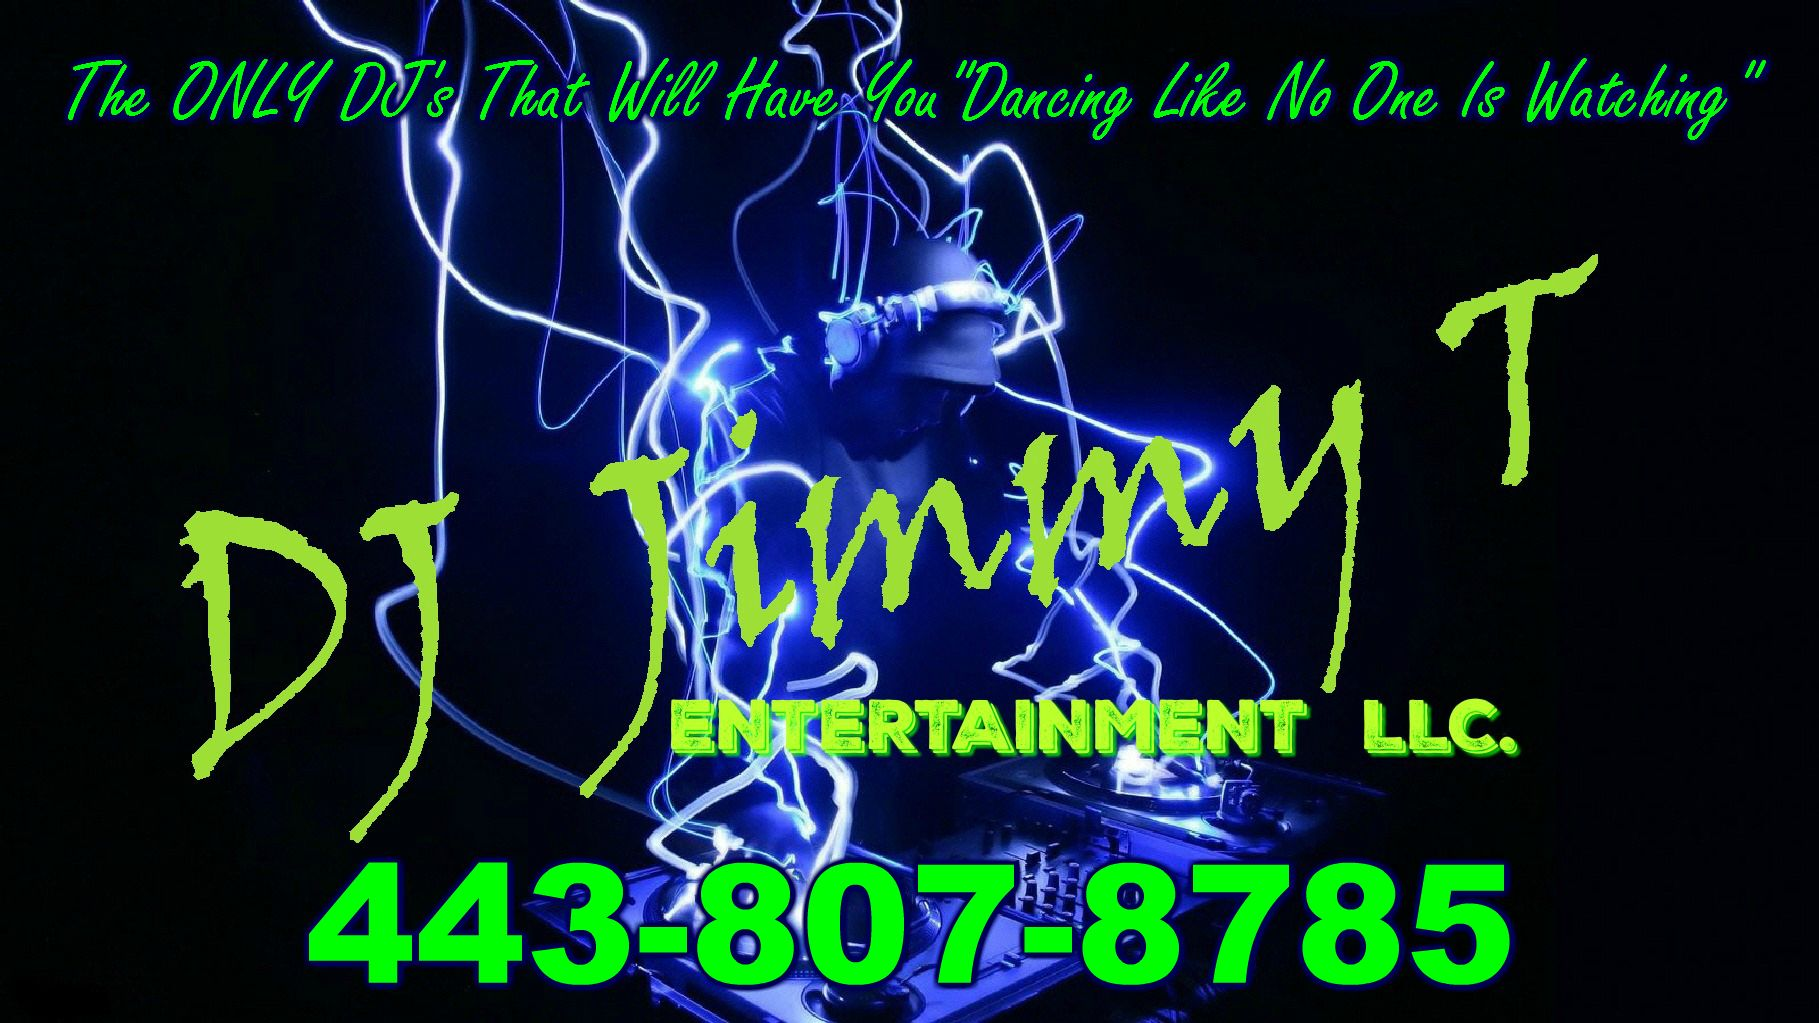 DJ Services Dance like no one is watching, Entertainment